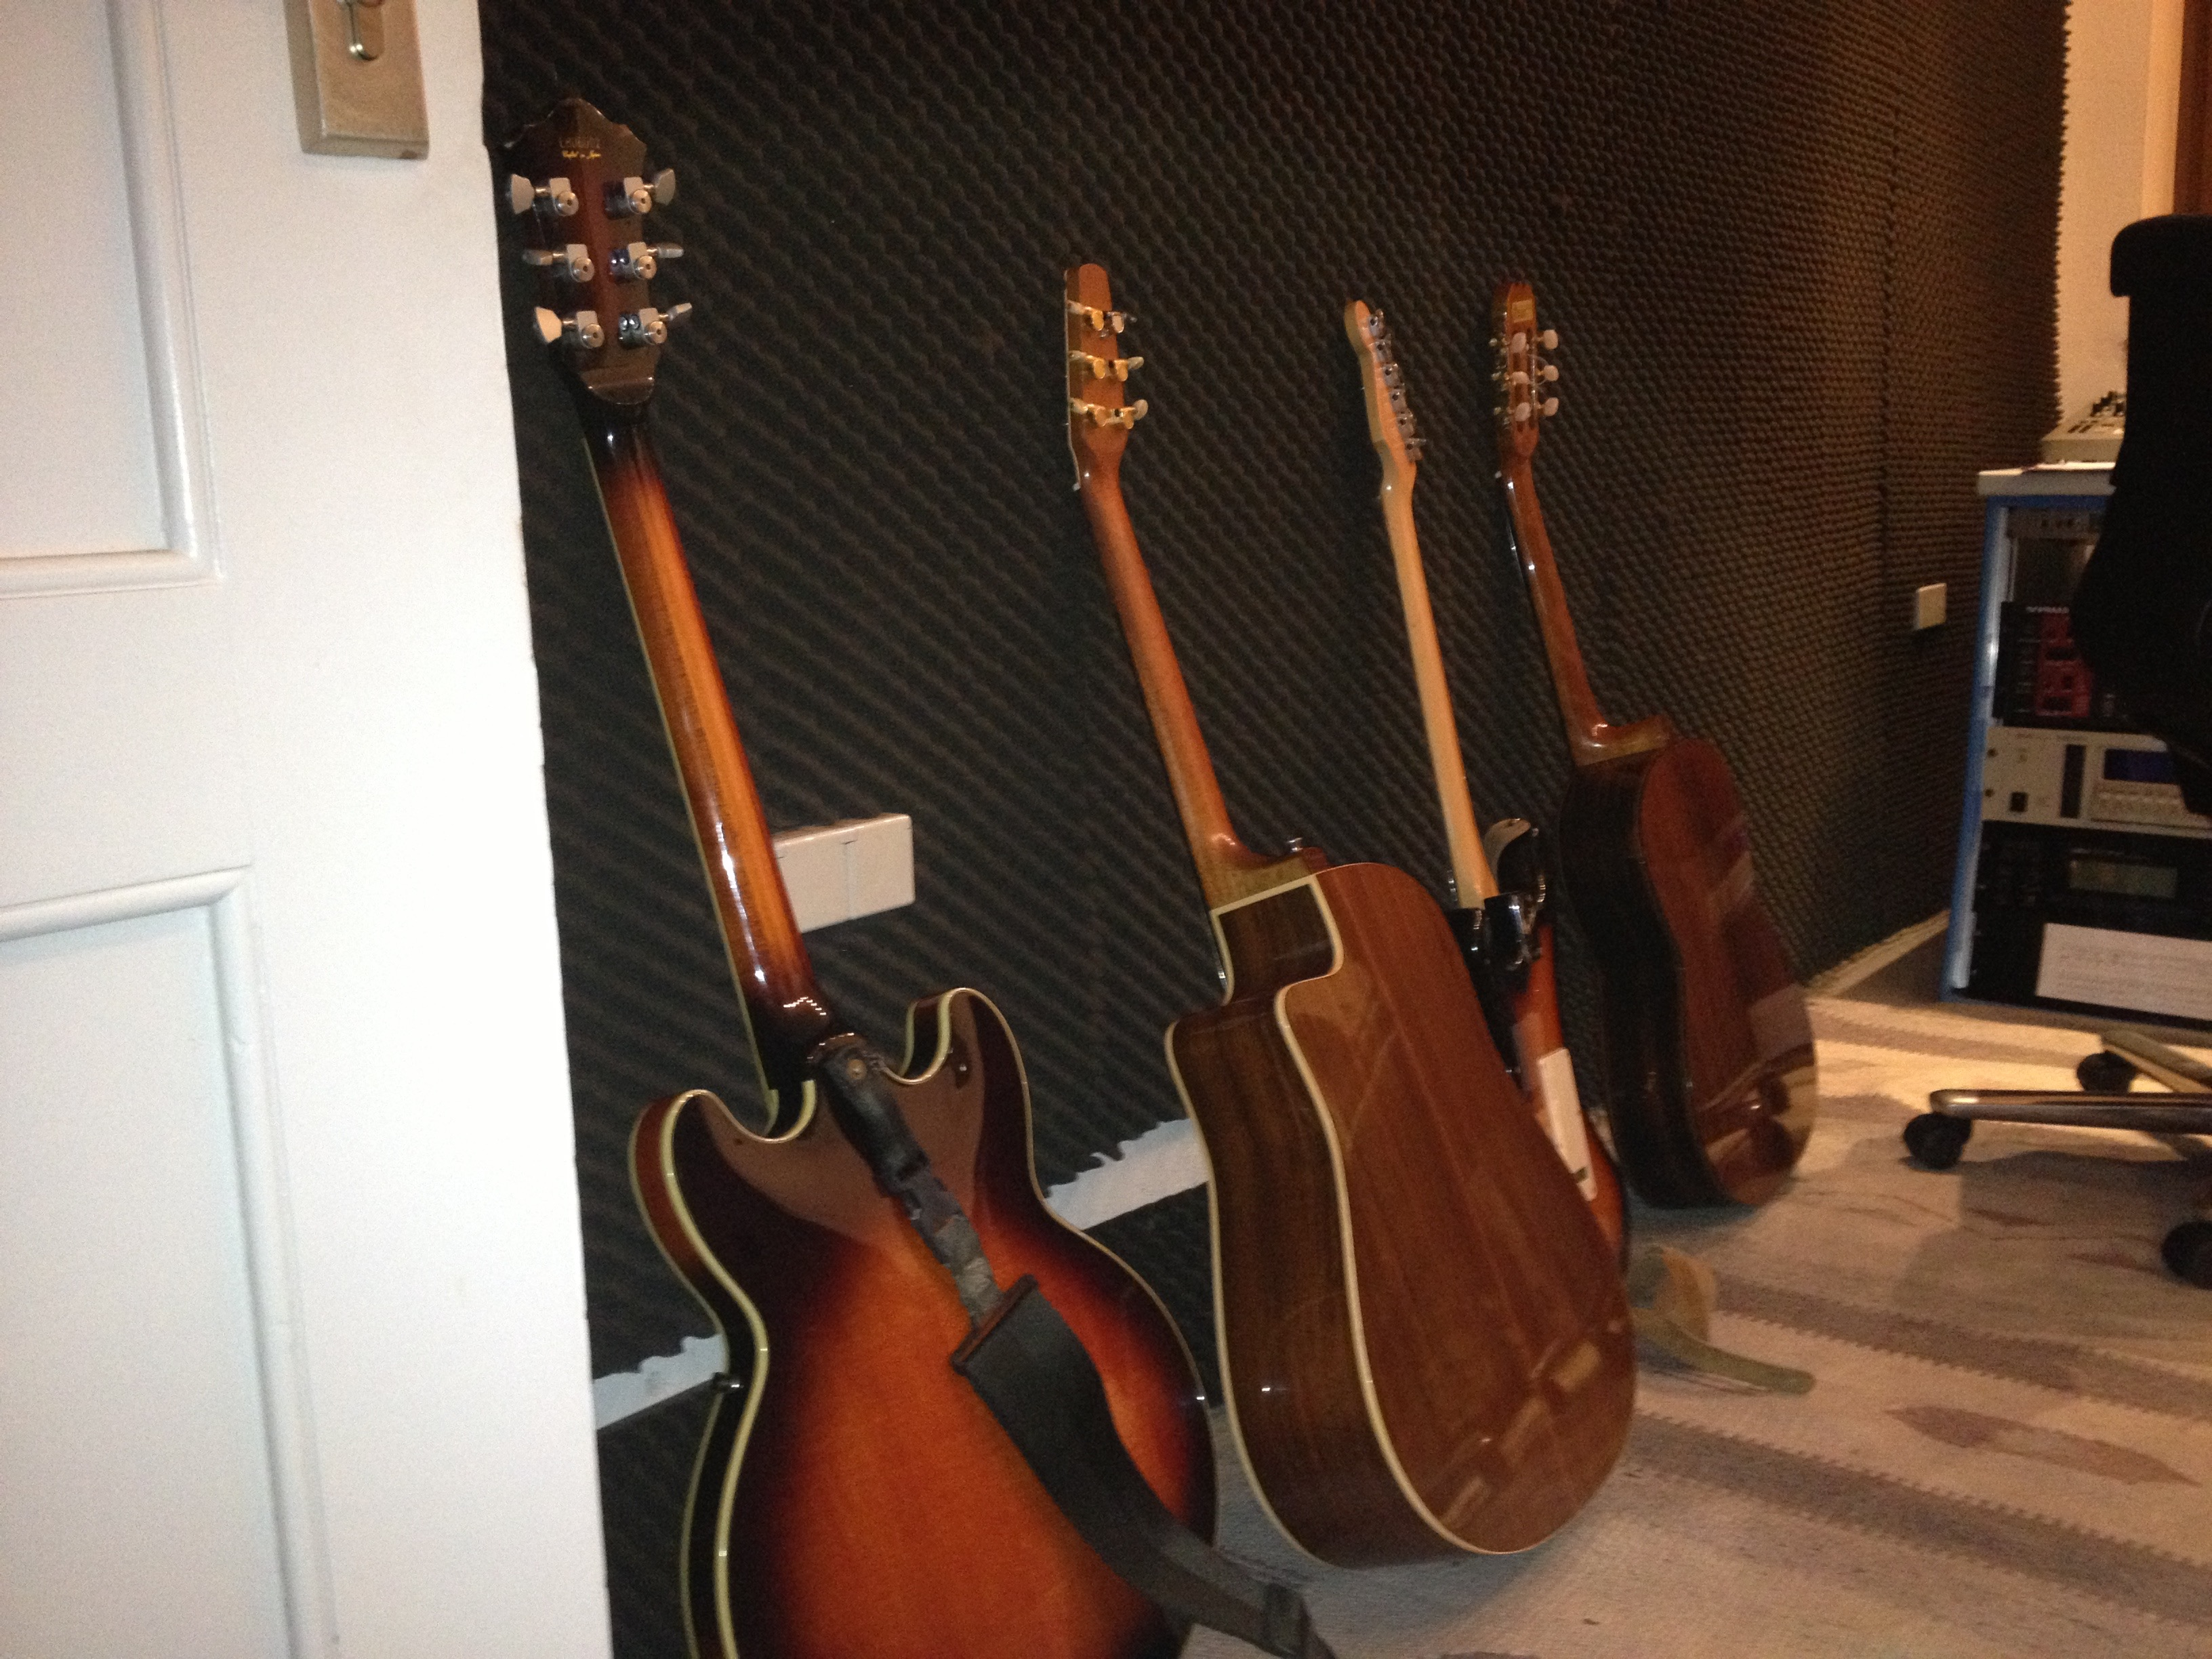 some guitars at CrossRecords